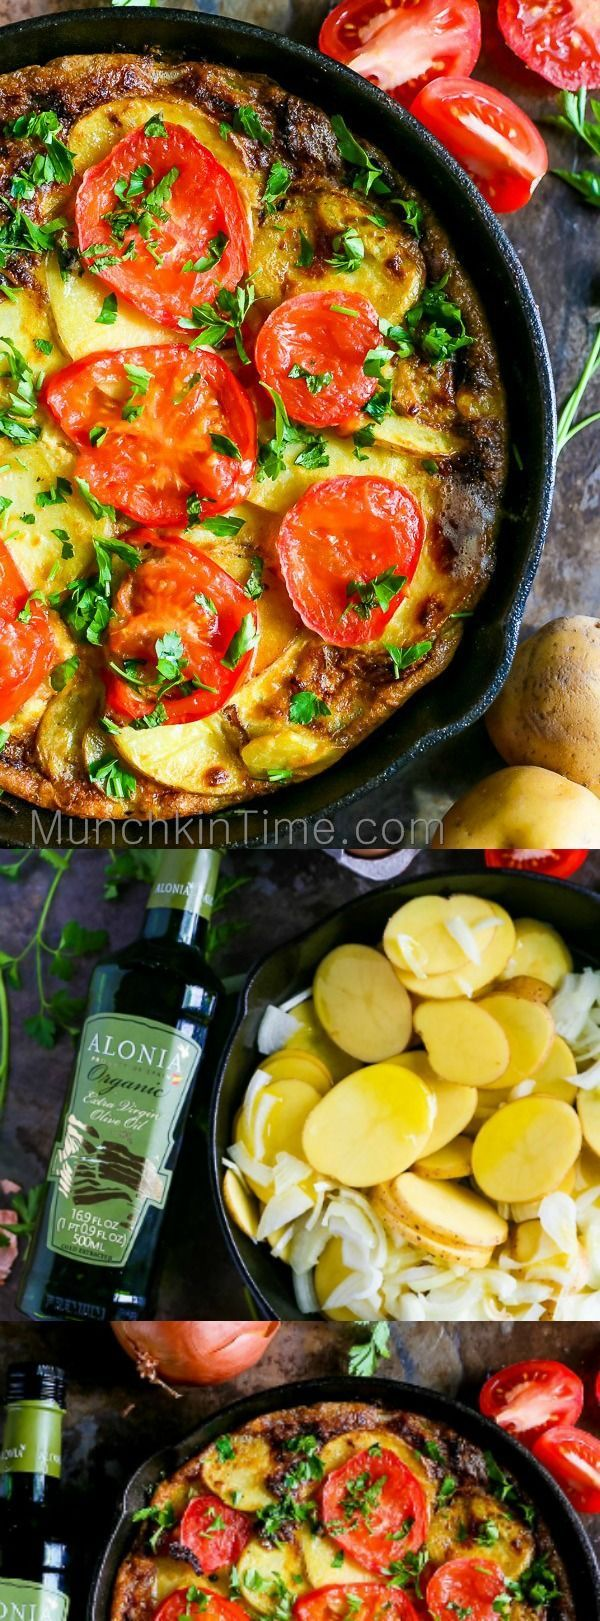 This Classic Spanish Omelette is a keeper! So simple and so delicious. Beautiful dish to make for Sunday Brunch.